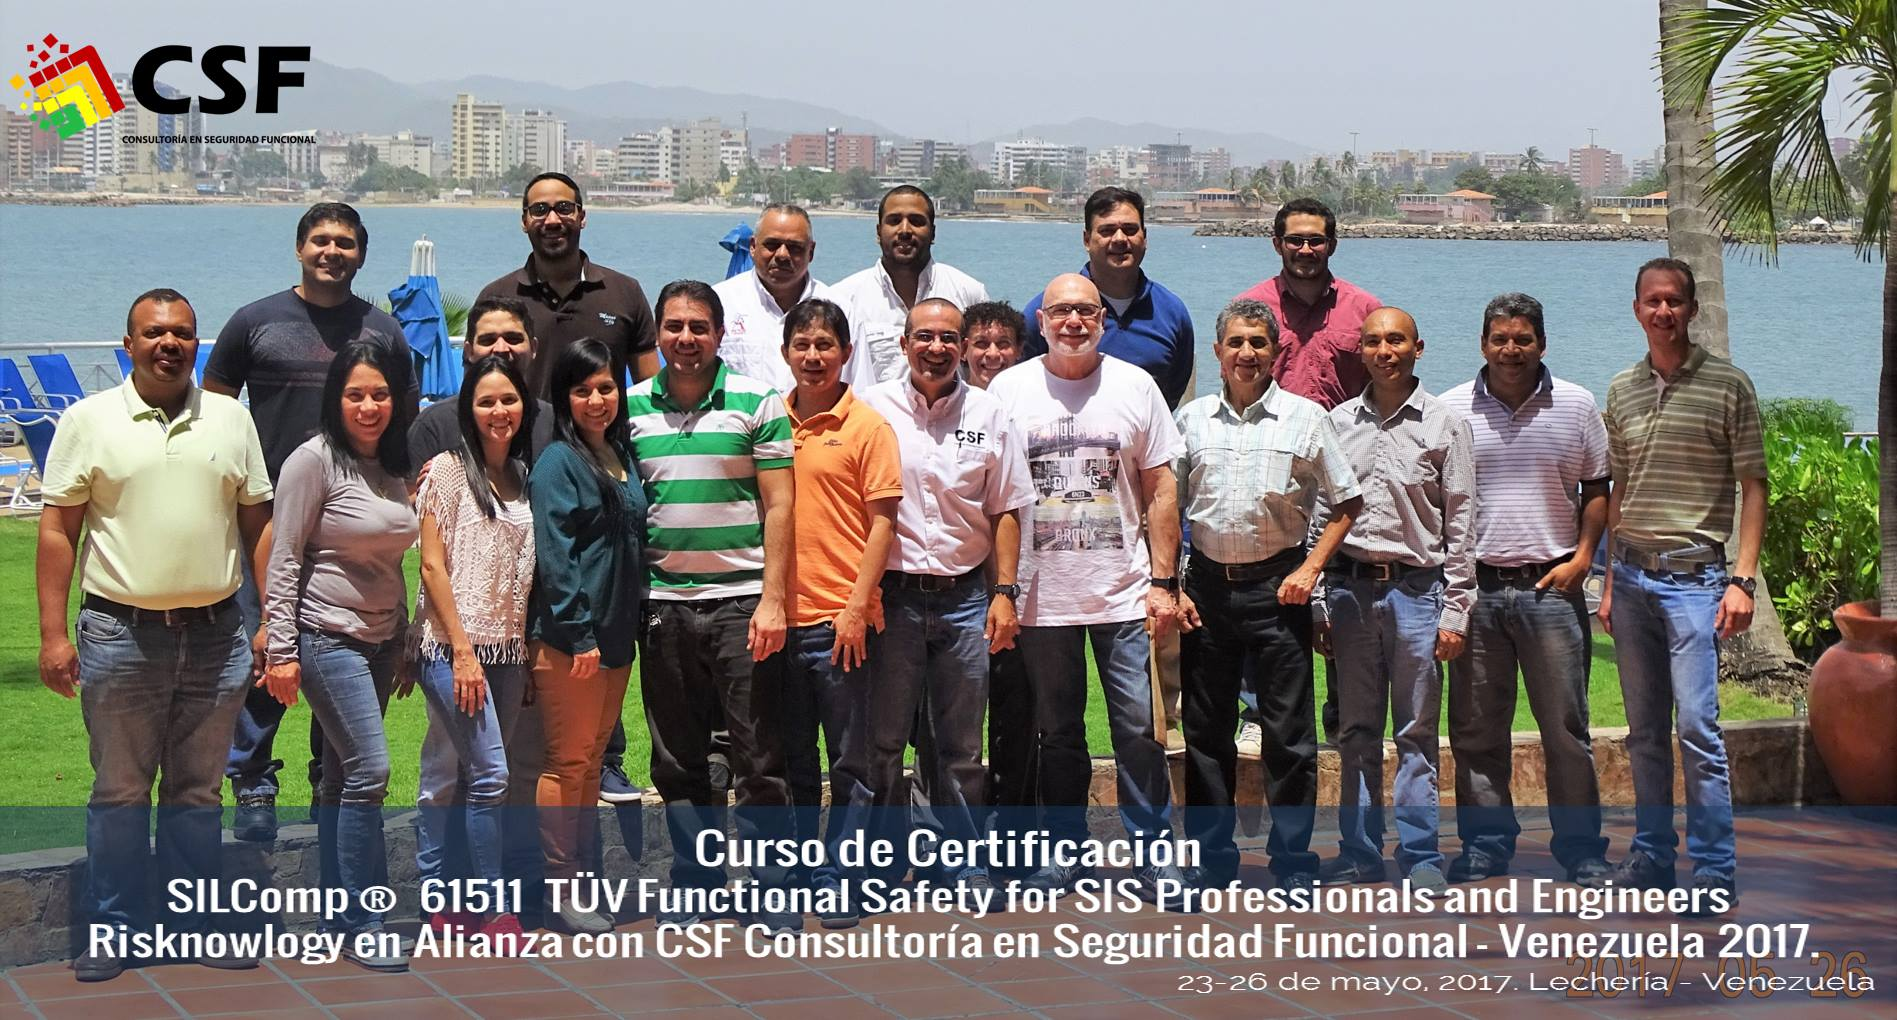 SIL competency in Venezuela - Attendees to the certification course SILComp 61511 Pro